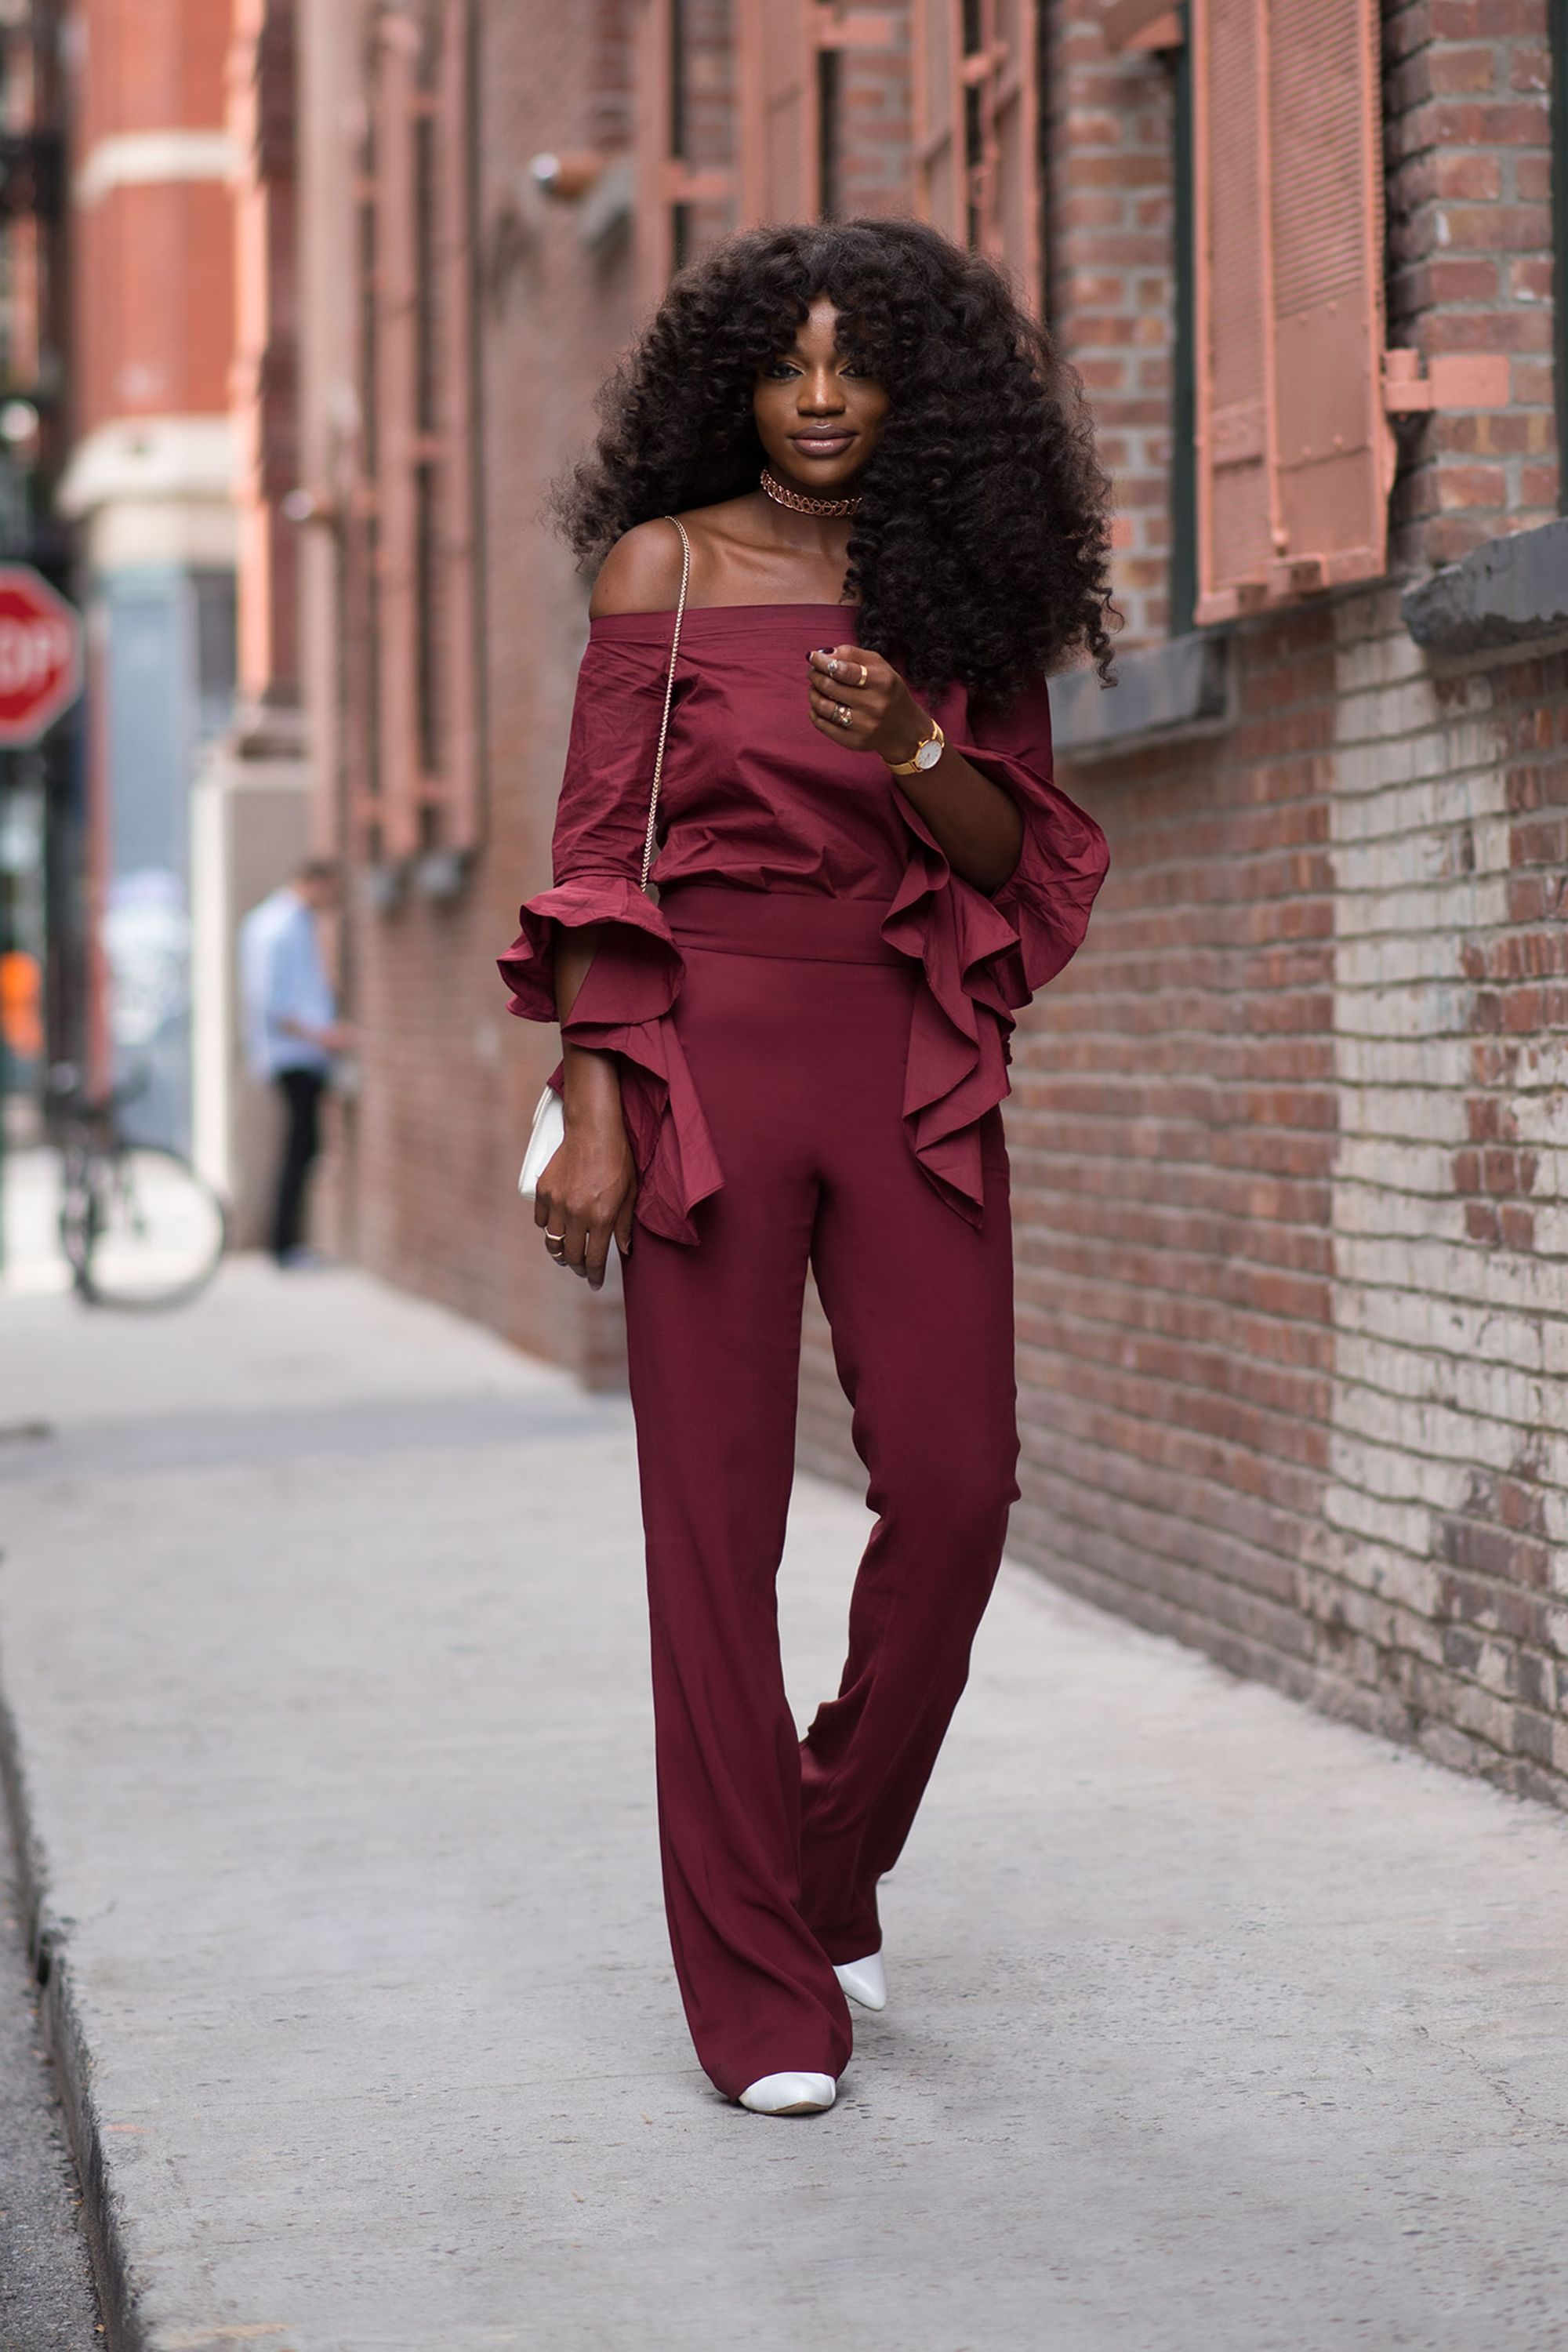 "<p>""Growing up, my mom always matched her handbag with her shoes—that's a style tip I adopted from her,"" Gold says.&nbsp&#x3B;Bonus points for embracing a bold classic fall shade of burgundy. ""It's my go-to color&#x3B;&nbsp&#x3B;I love the contrast of both maroon and white against my complexion.""</p>"